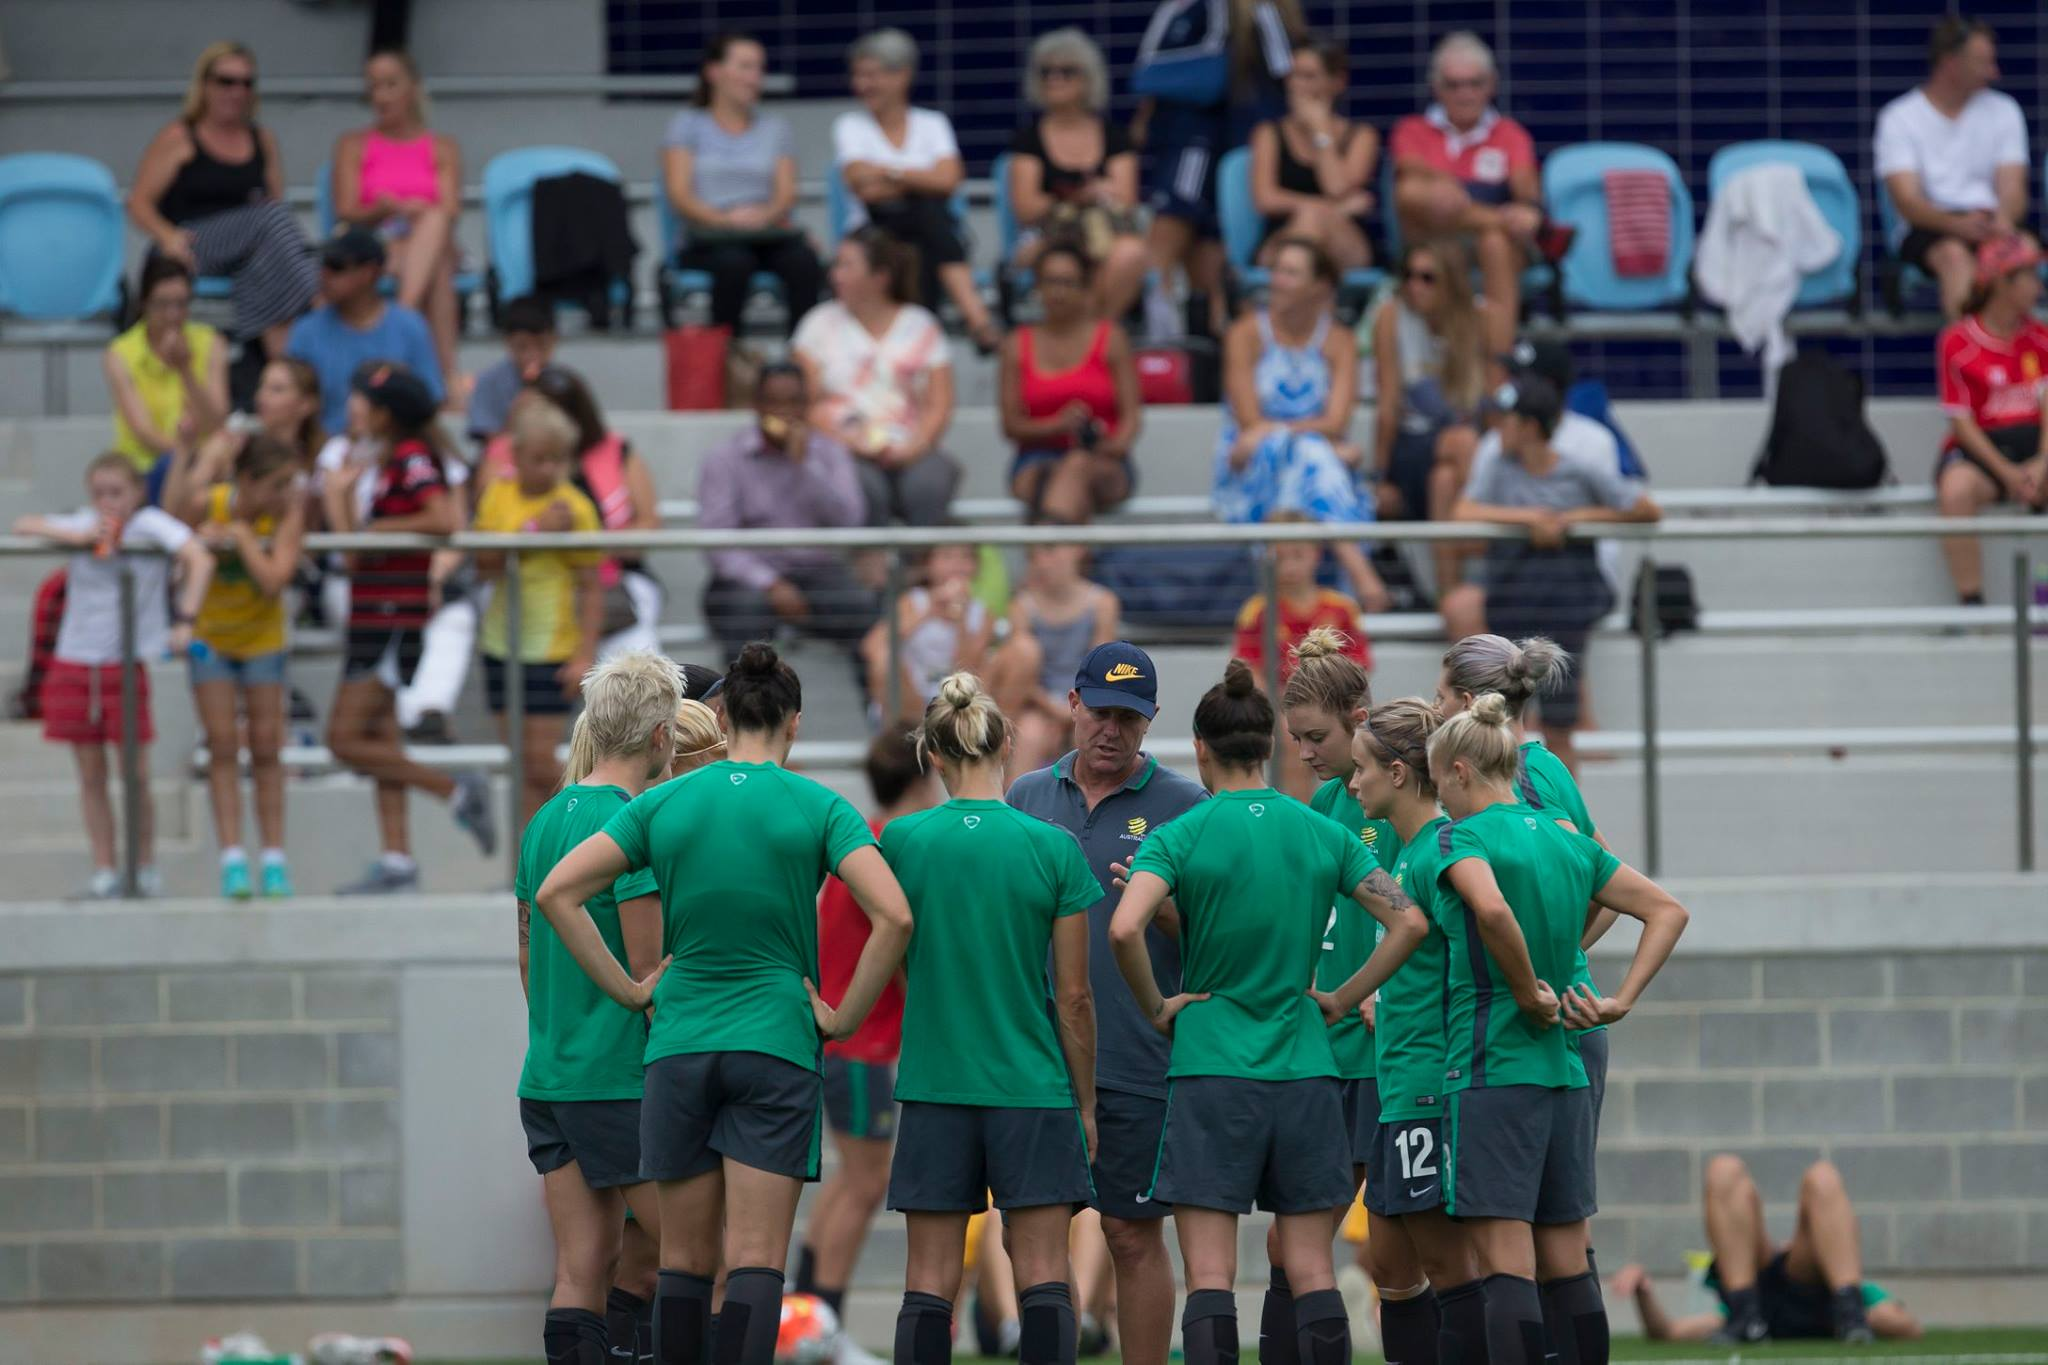 Regular camps for the Matildas has been the main preparation (Photo: Damian Briggs / Football NSW)